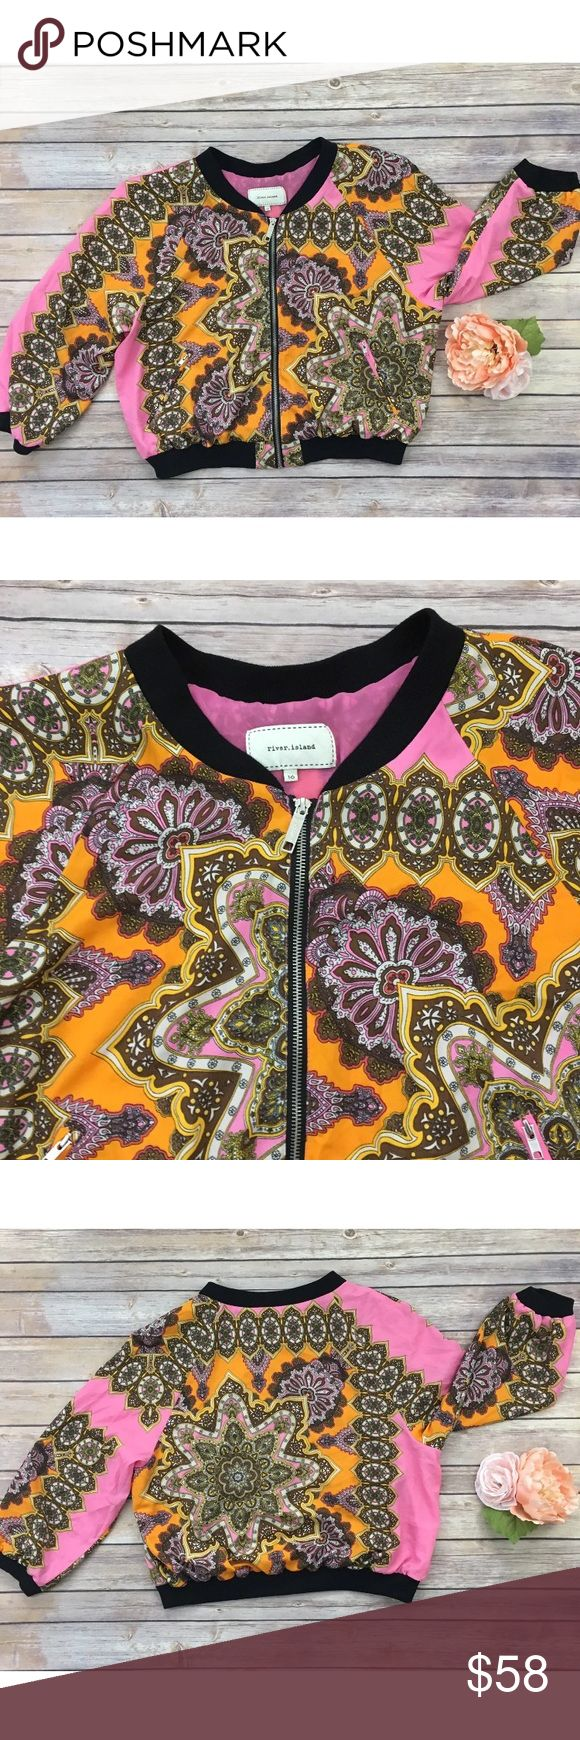 """River Island Paisley Bomber Jacket River.island brand bomber jacket. Updated urban Paisley print. Pink and orange. Polyester with full pink lining. UK design. UK 14/US 10/ Eur 42. Gently used, no flaws. Please see pictures for details.   Armpit to armpit - 22.5""""  Shoulder to hem - 21""""  Sleeve length - 23"""" River Island Jackets & Coats"""